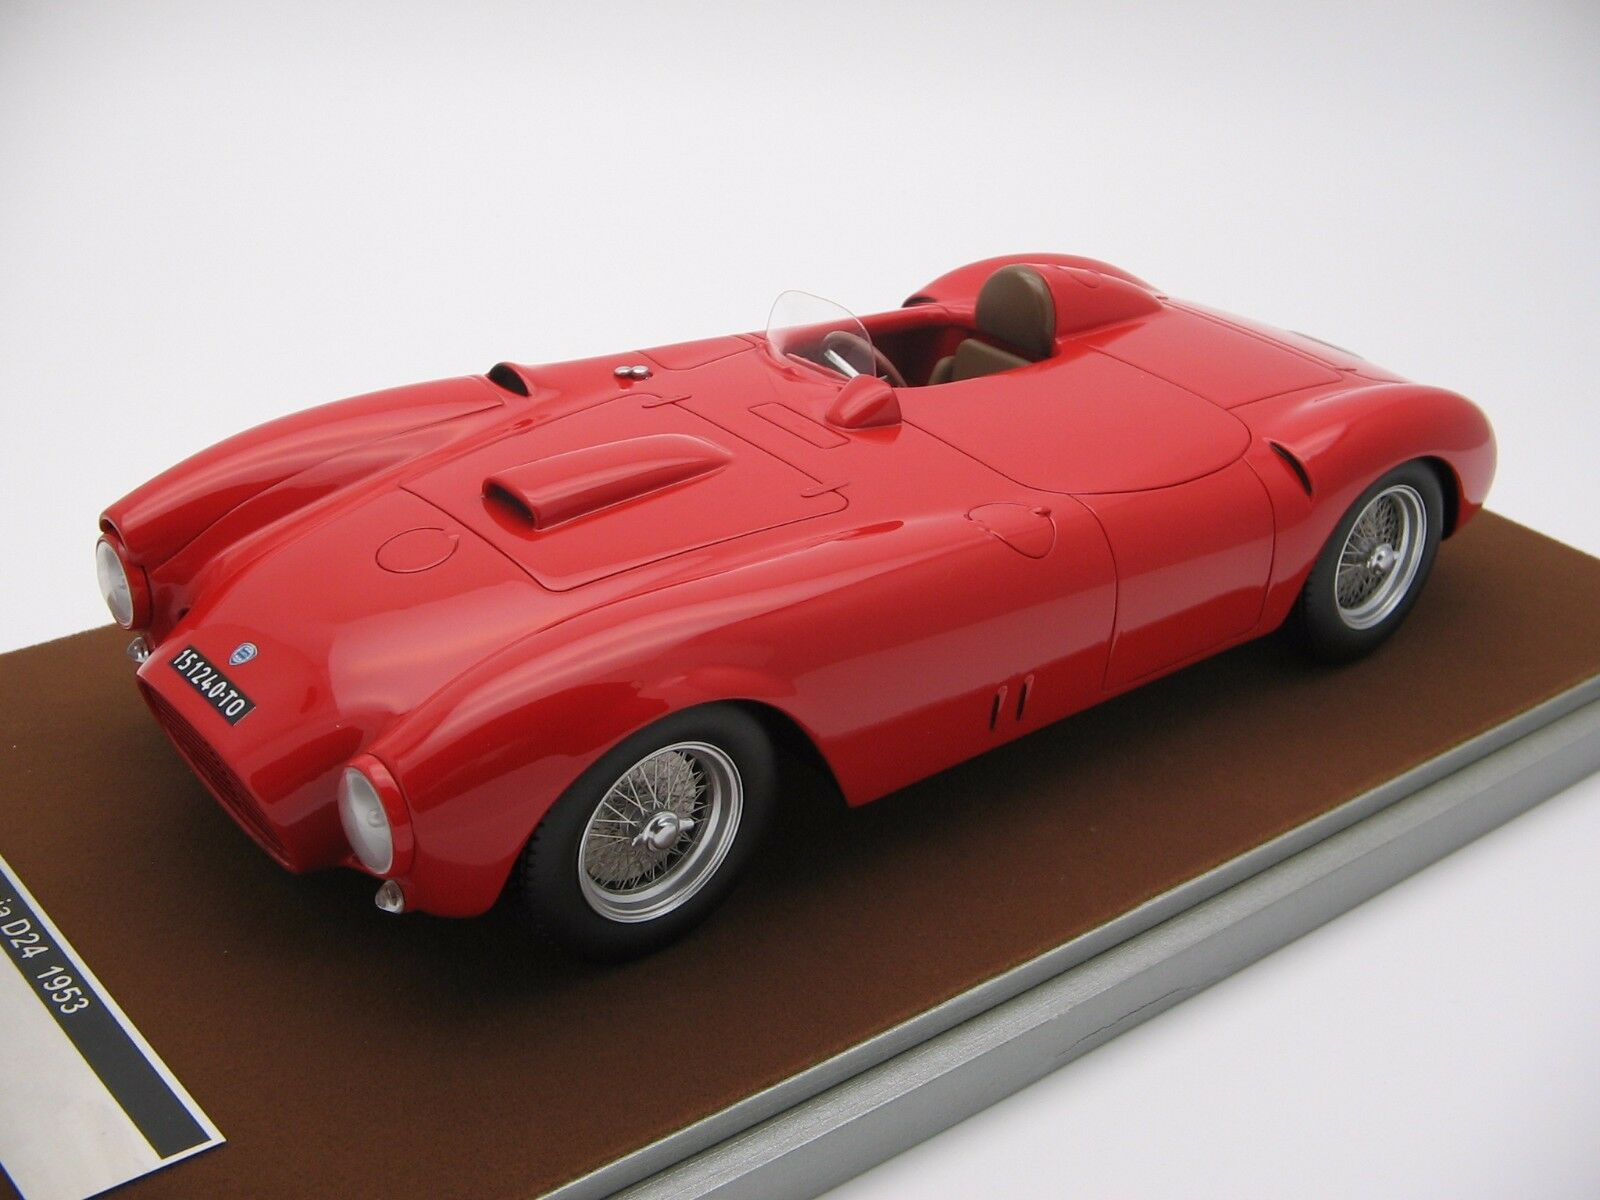 1 18 scale Tecnomodel Lancia D24 Spyder Spyder Spyder press red 1953 - TM18-43A 0a6c8f